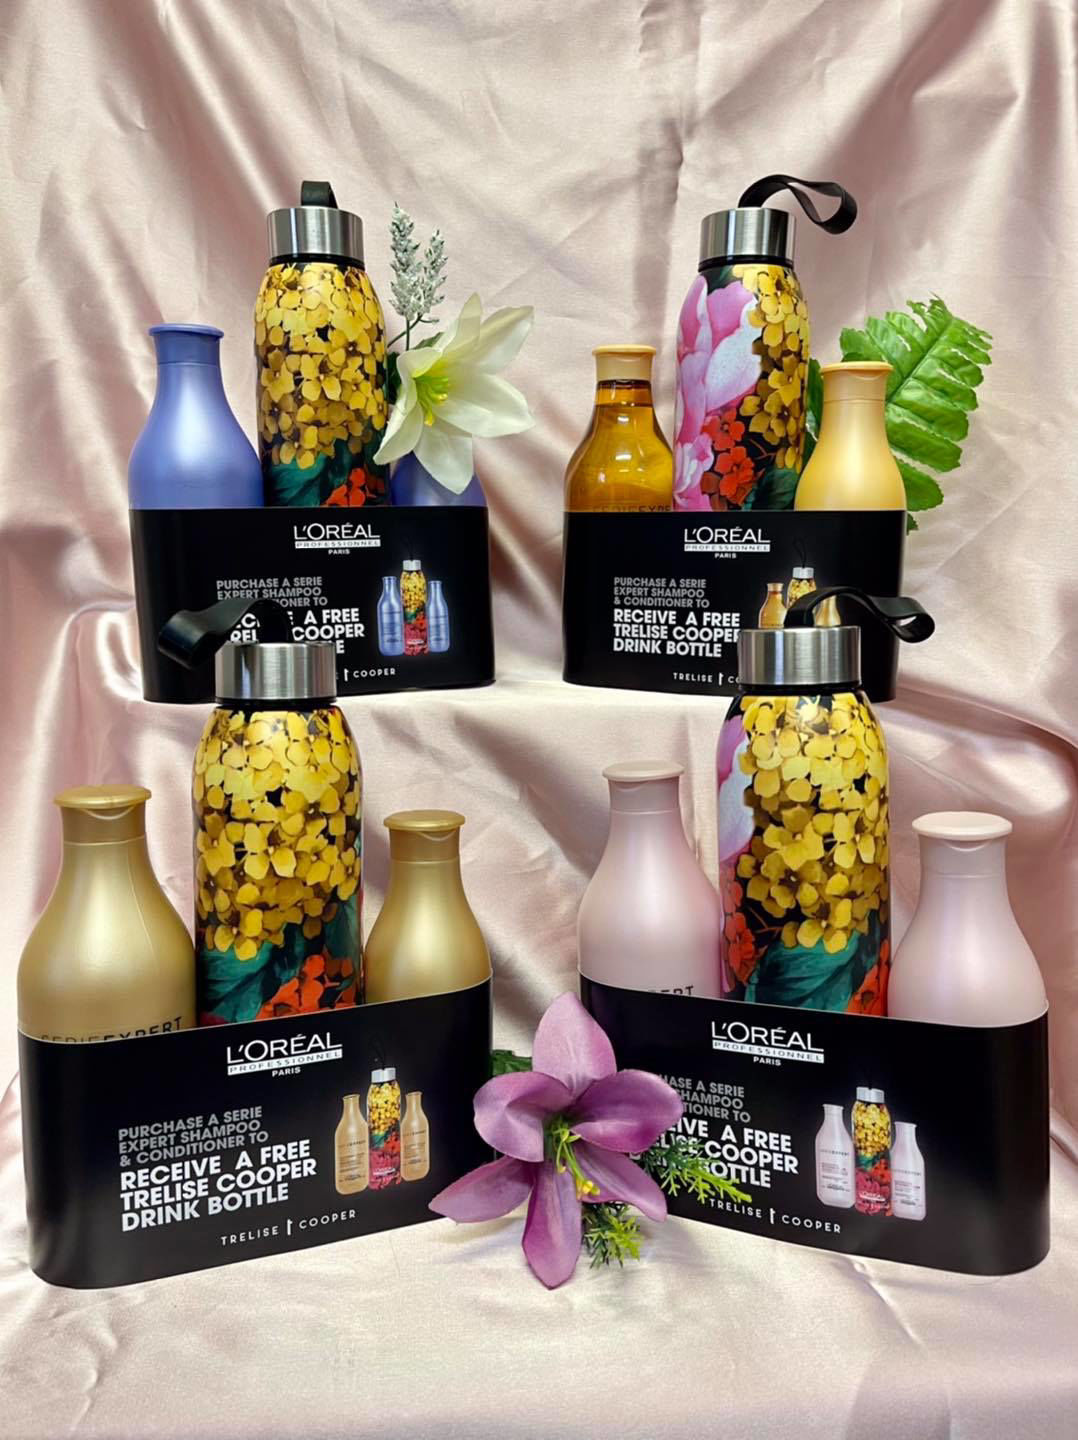 L'Oreal - Nutrifier - Mother's Day Set - Trelise Cooper Duo -